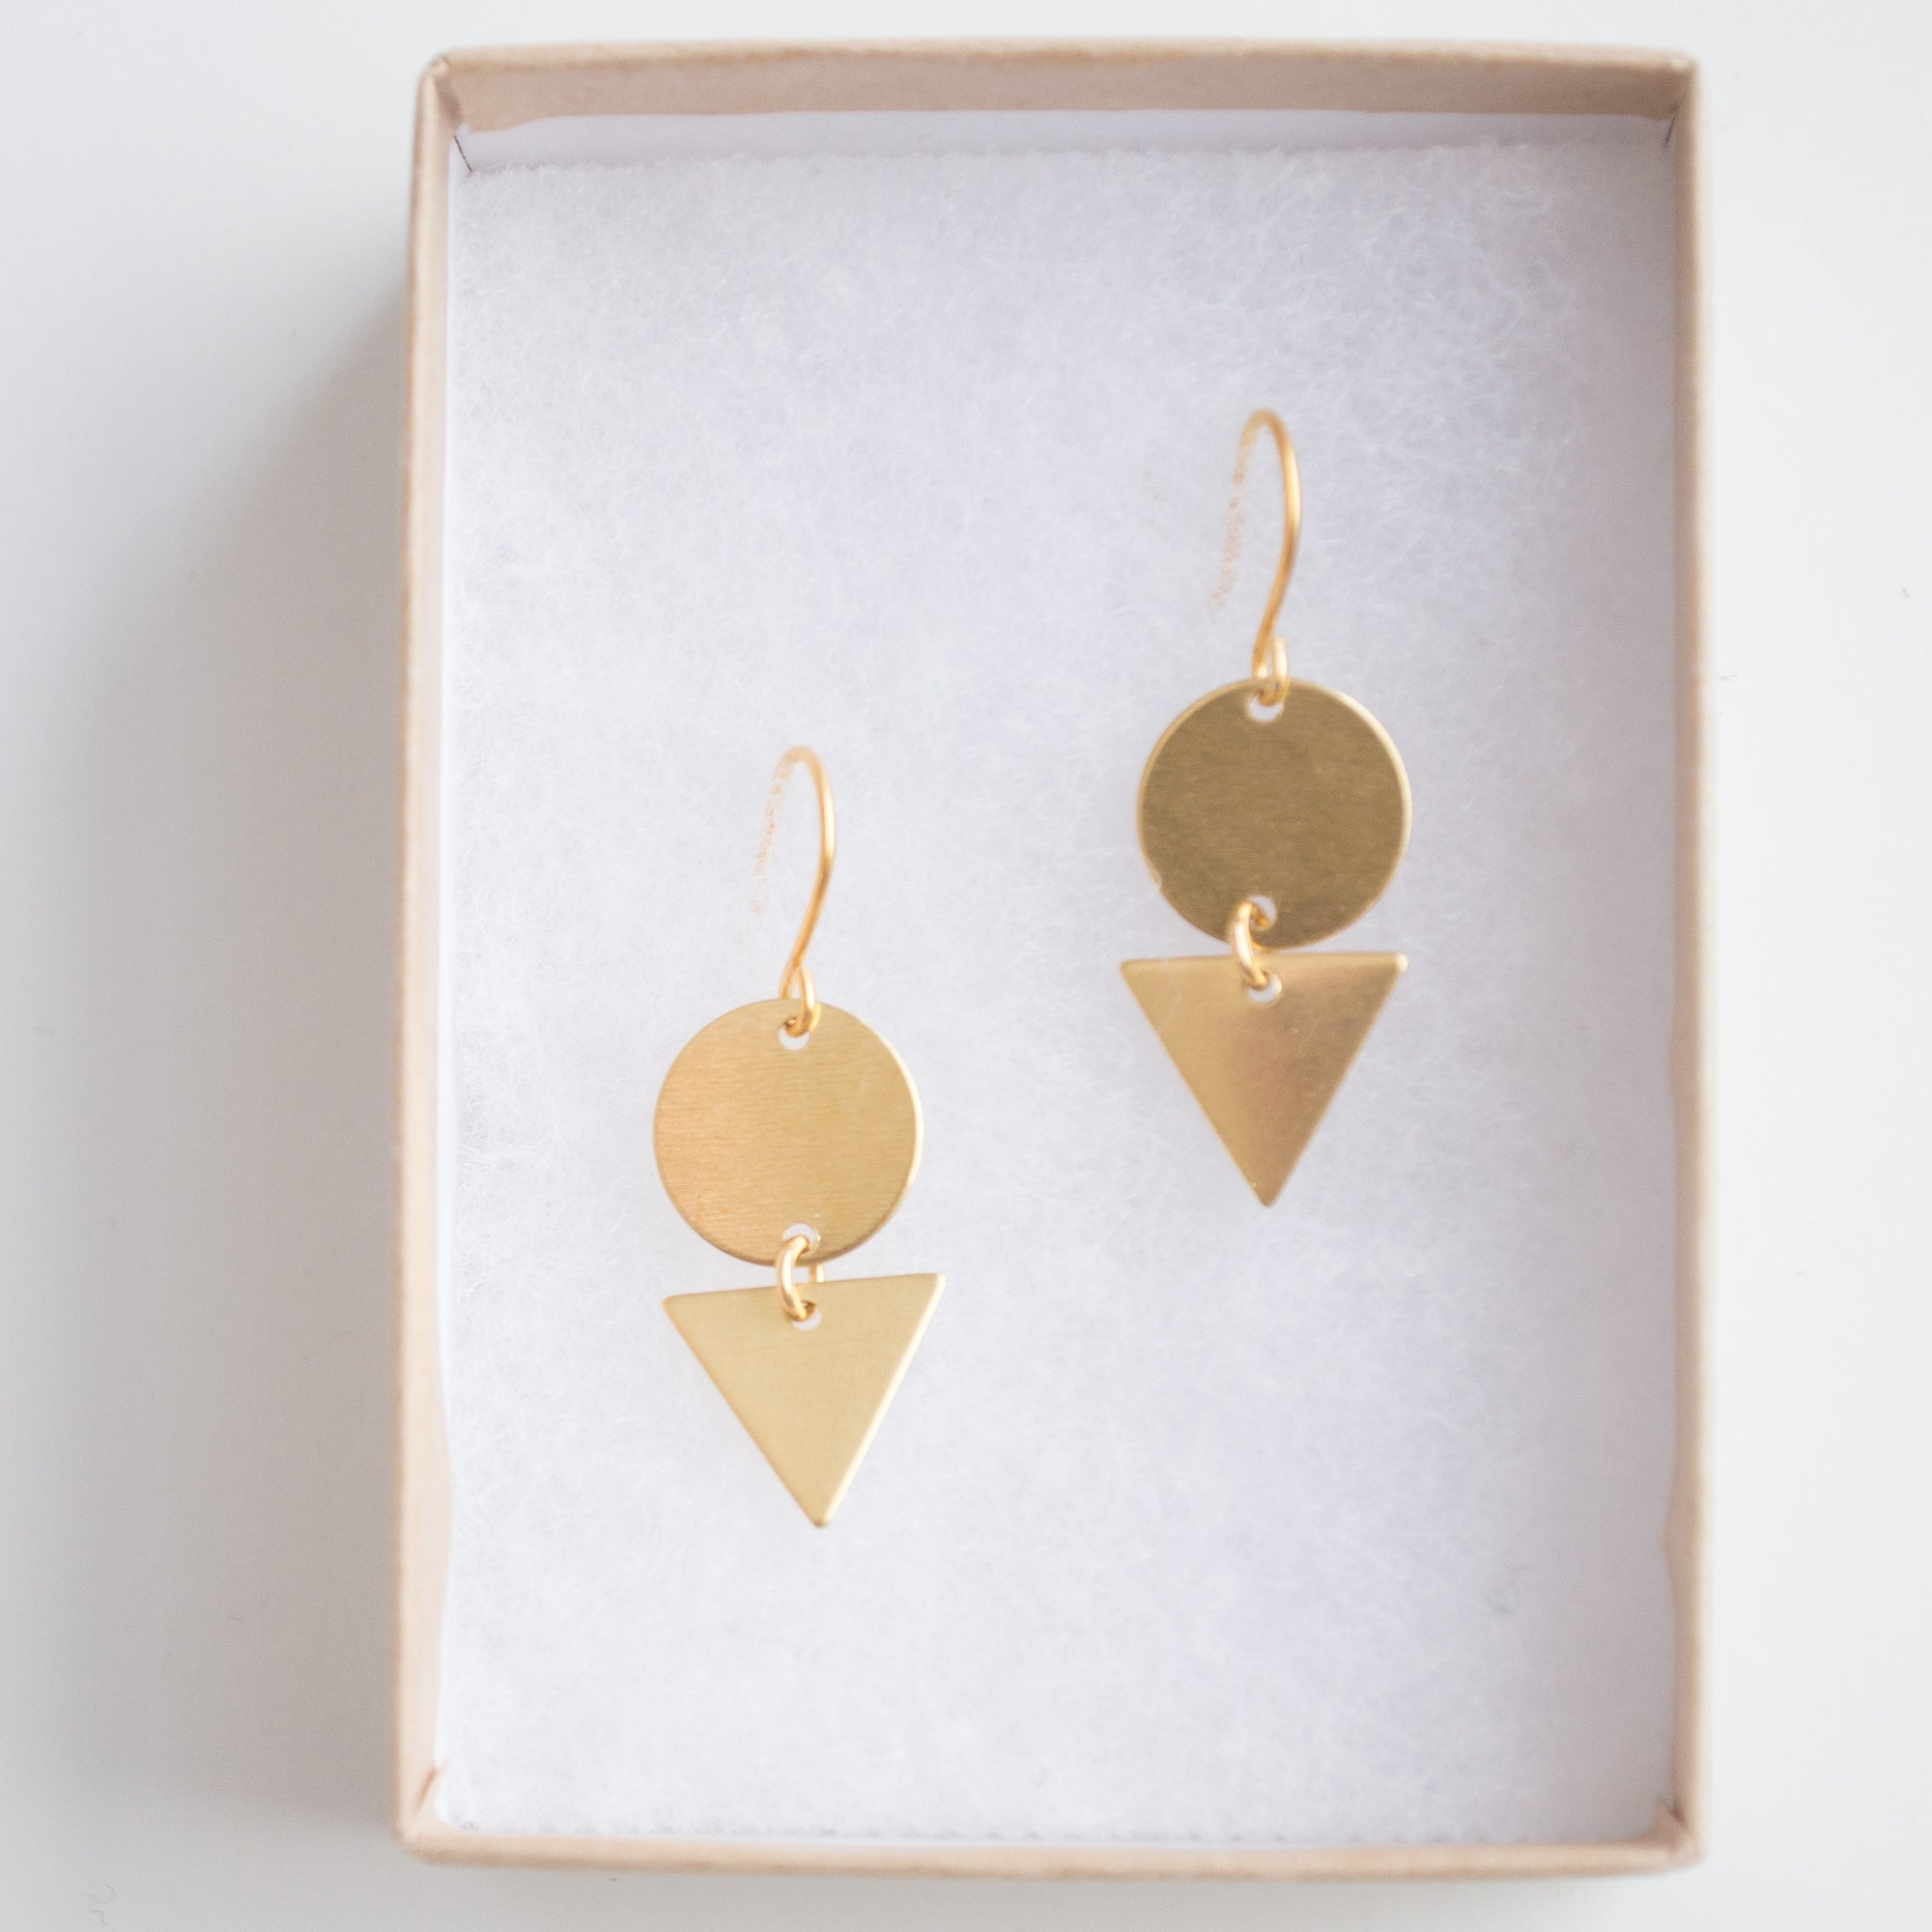 geometric earing personality drop big v vintage dangle women shape small in exaggerated eardrops gold item brinco earrings from for jeae